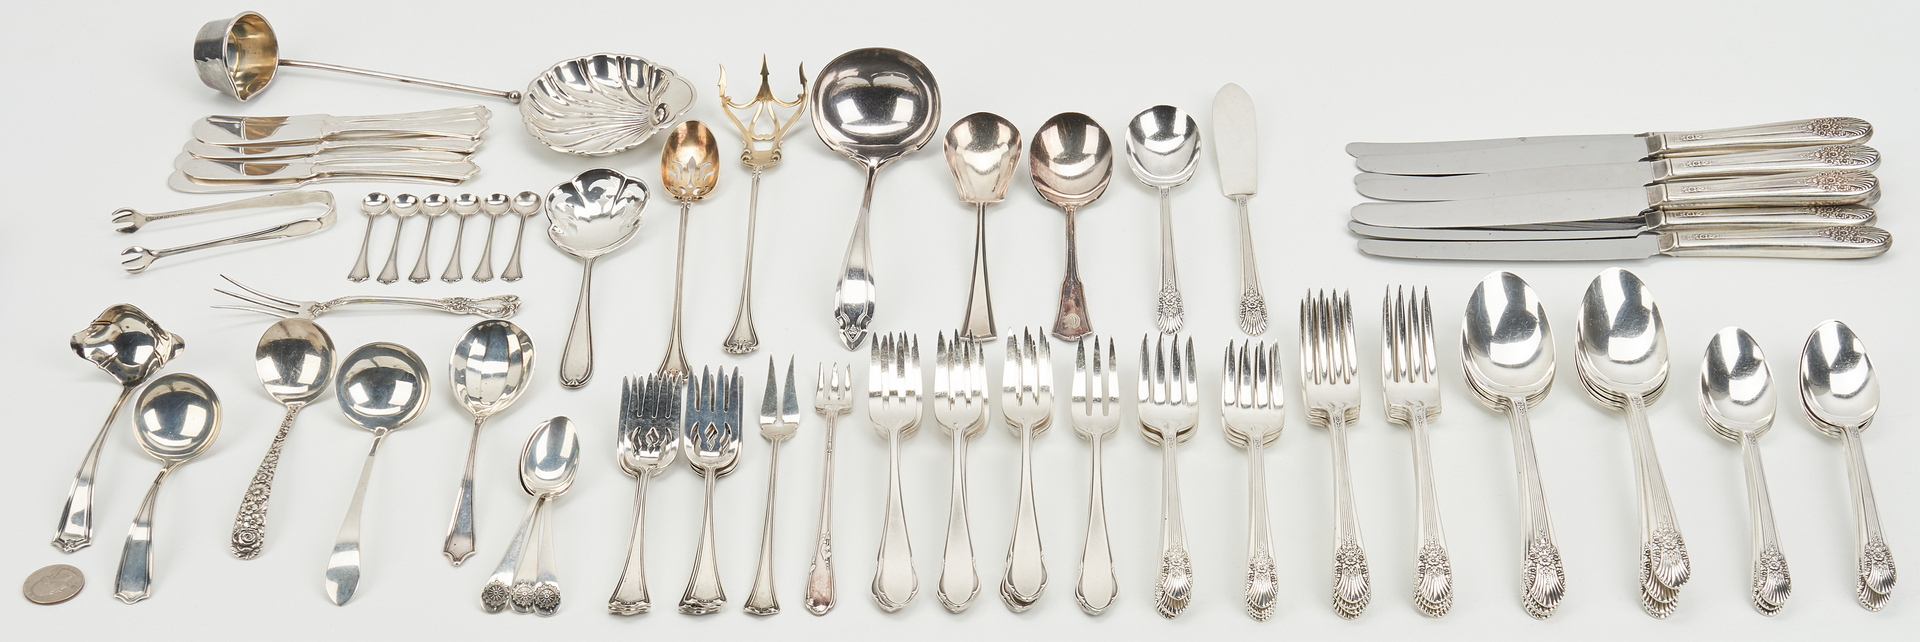 Lot 940: 93 Pcs. Flatware incl. Century Service for 8